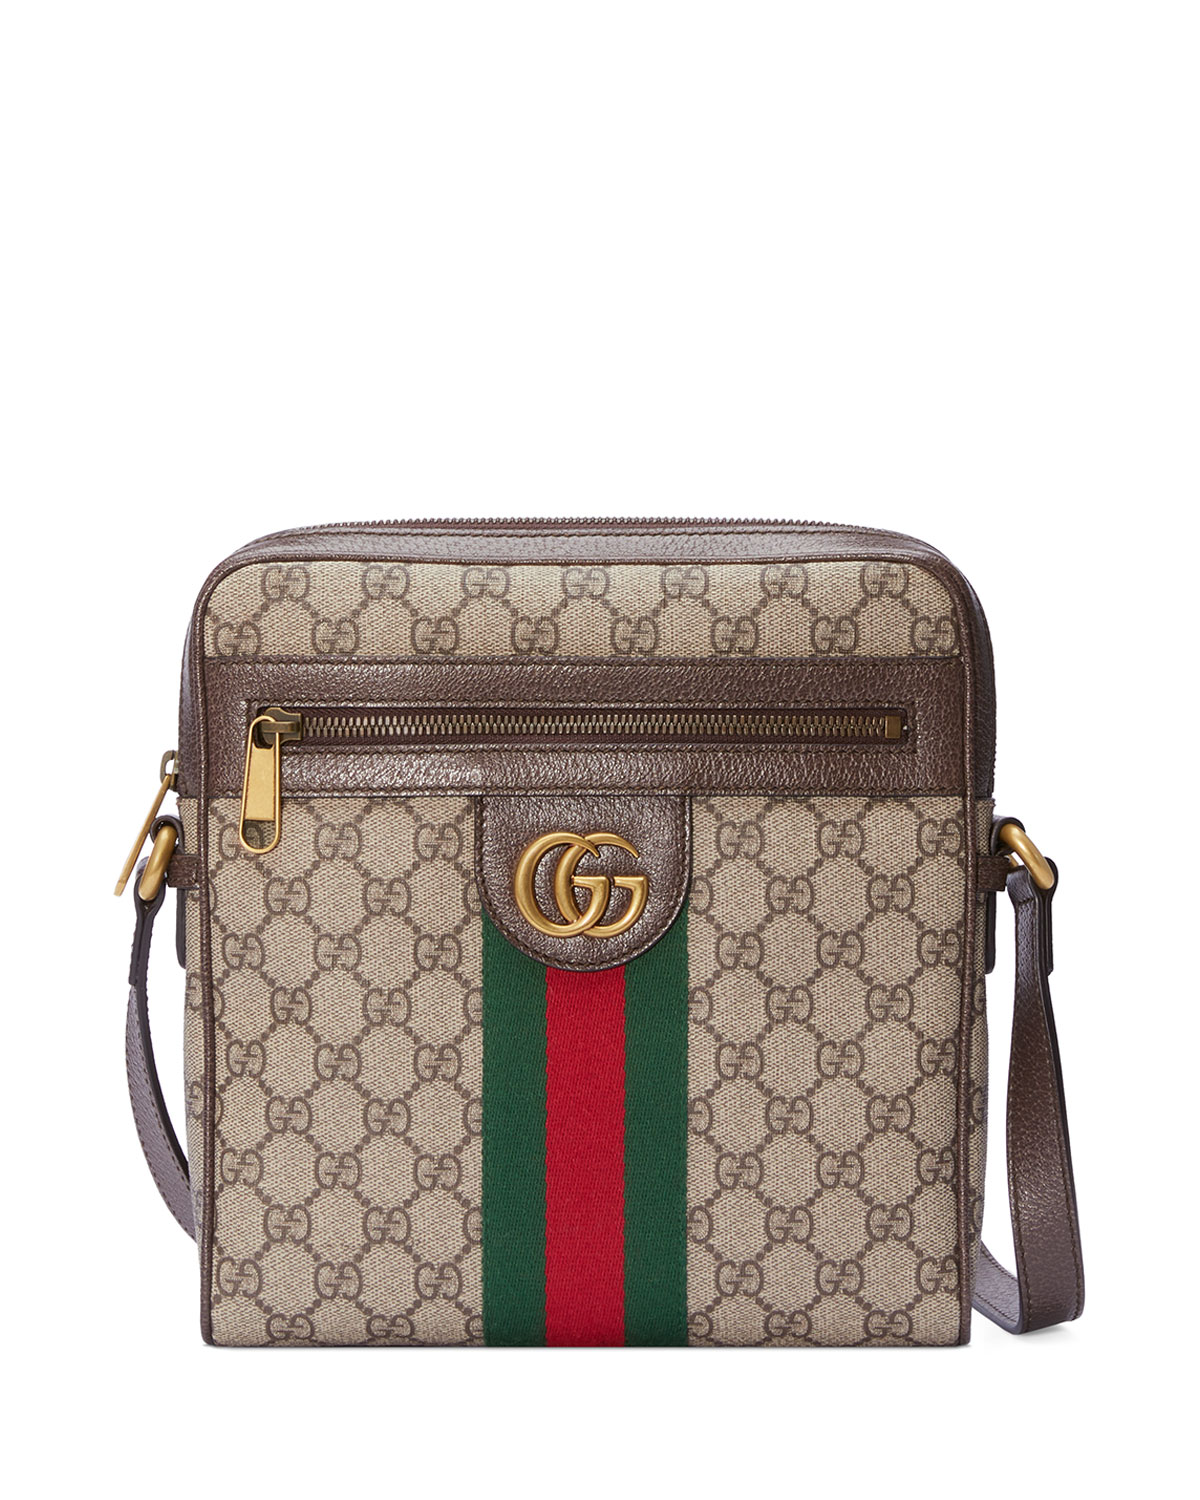 69858498a Gucci Ophidia GG Supreme Canvas Messenger Bag | Neiman Marcus